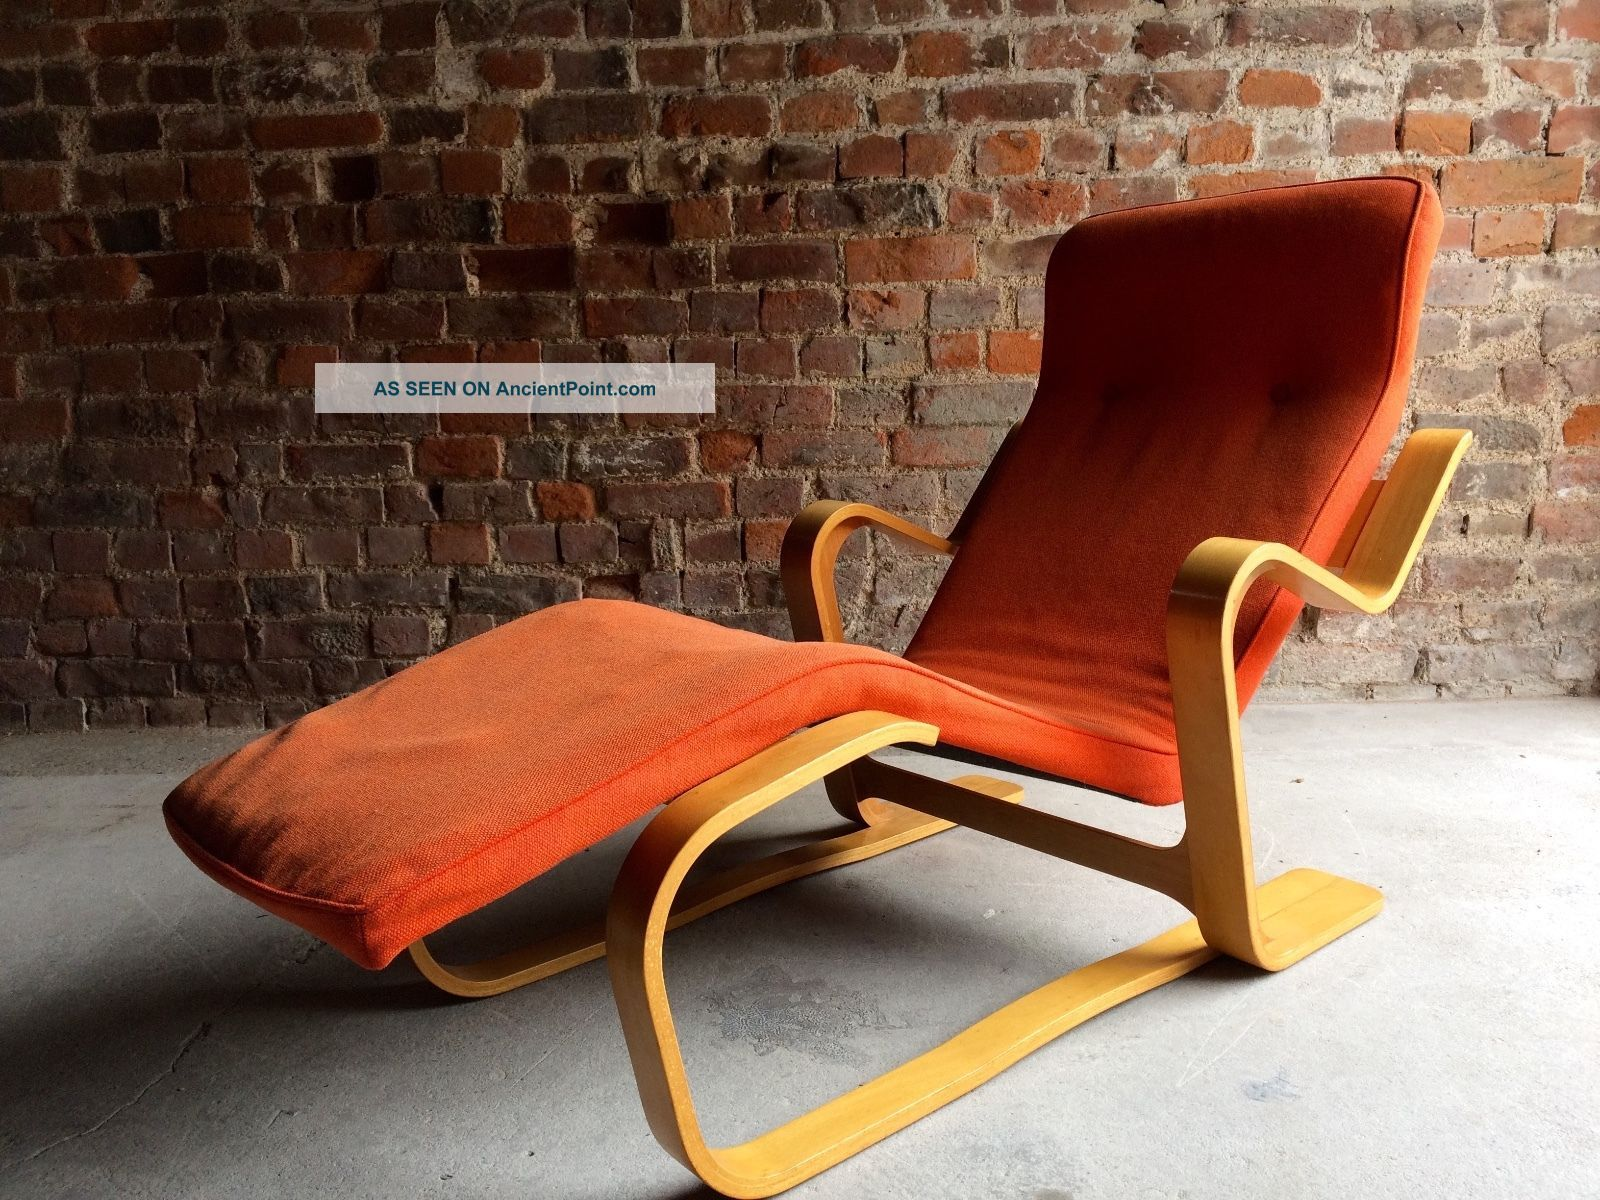 Stunning Marcel Breuer Long Chair Chaise Longue Mid